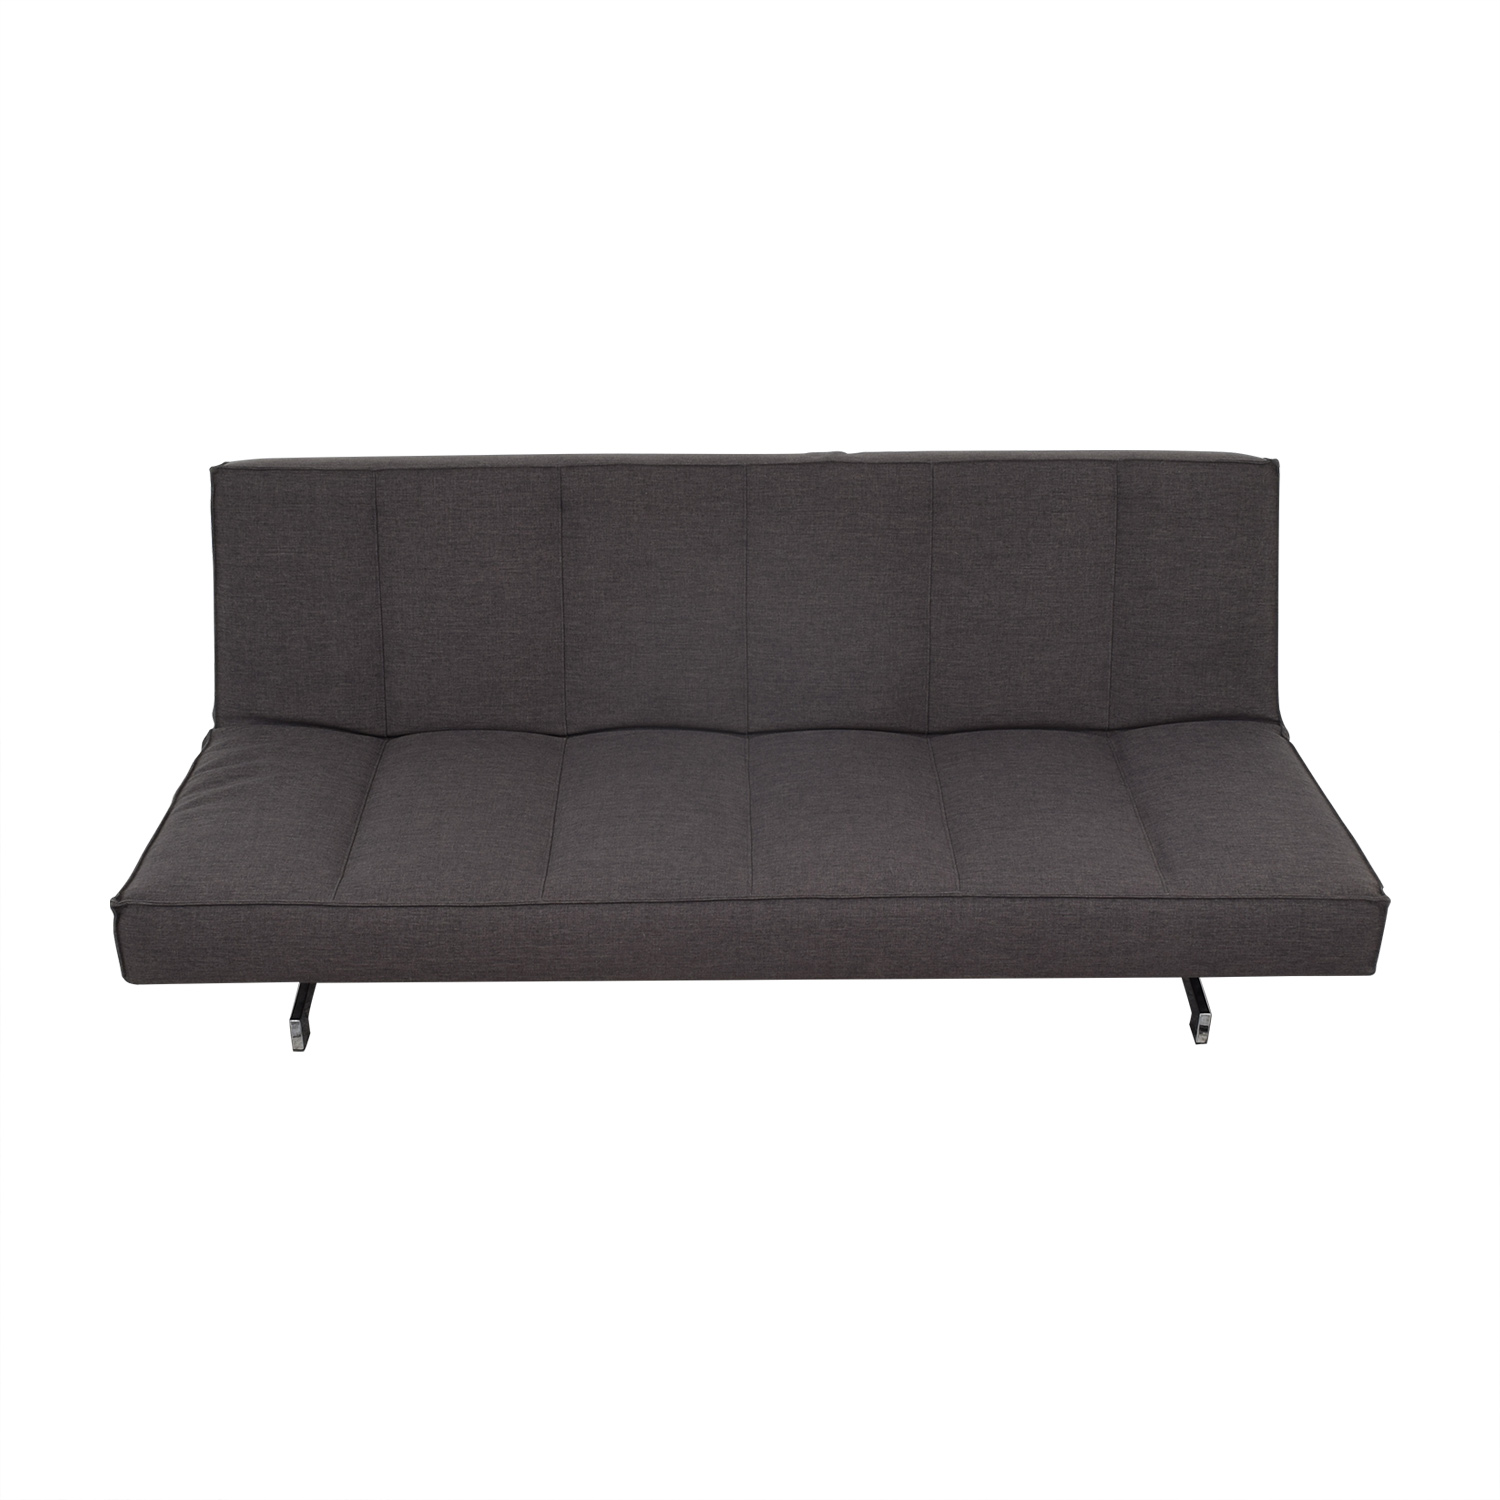 CB2 CB2 Flex Gravel Convertible Sofa Sofas